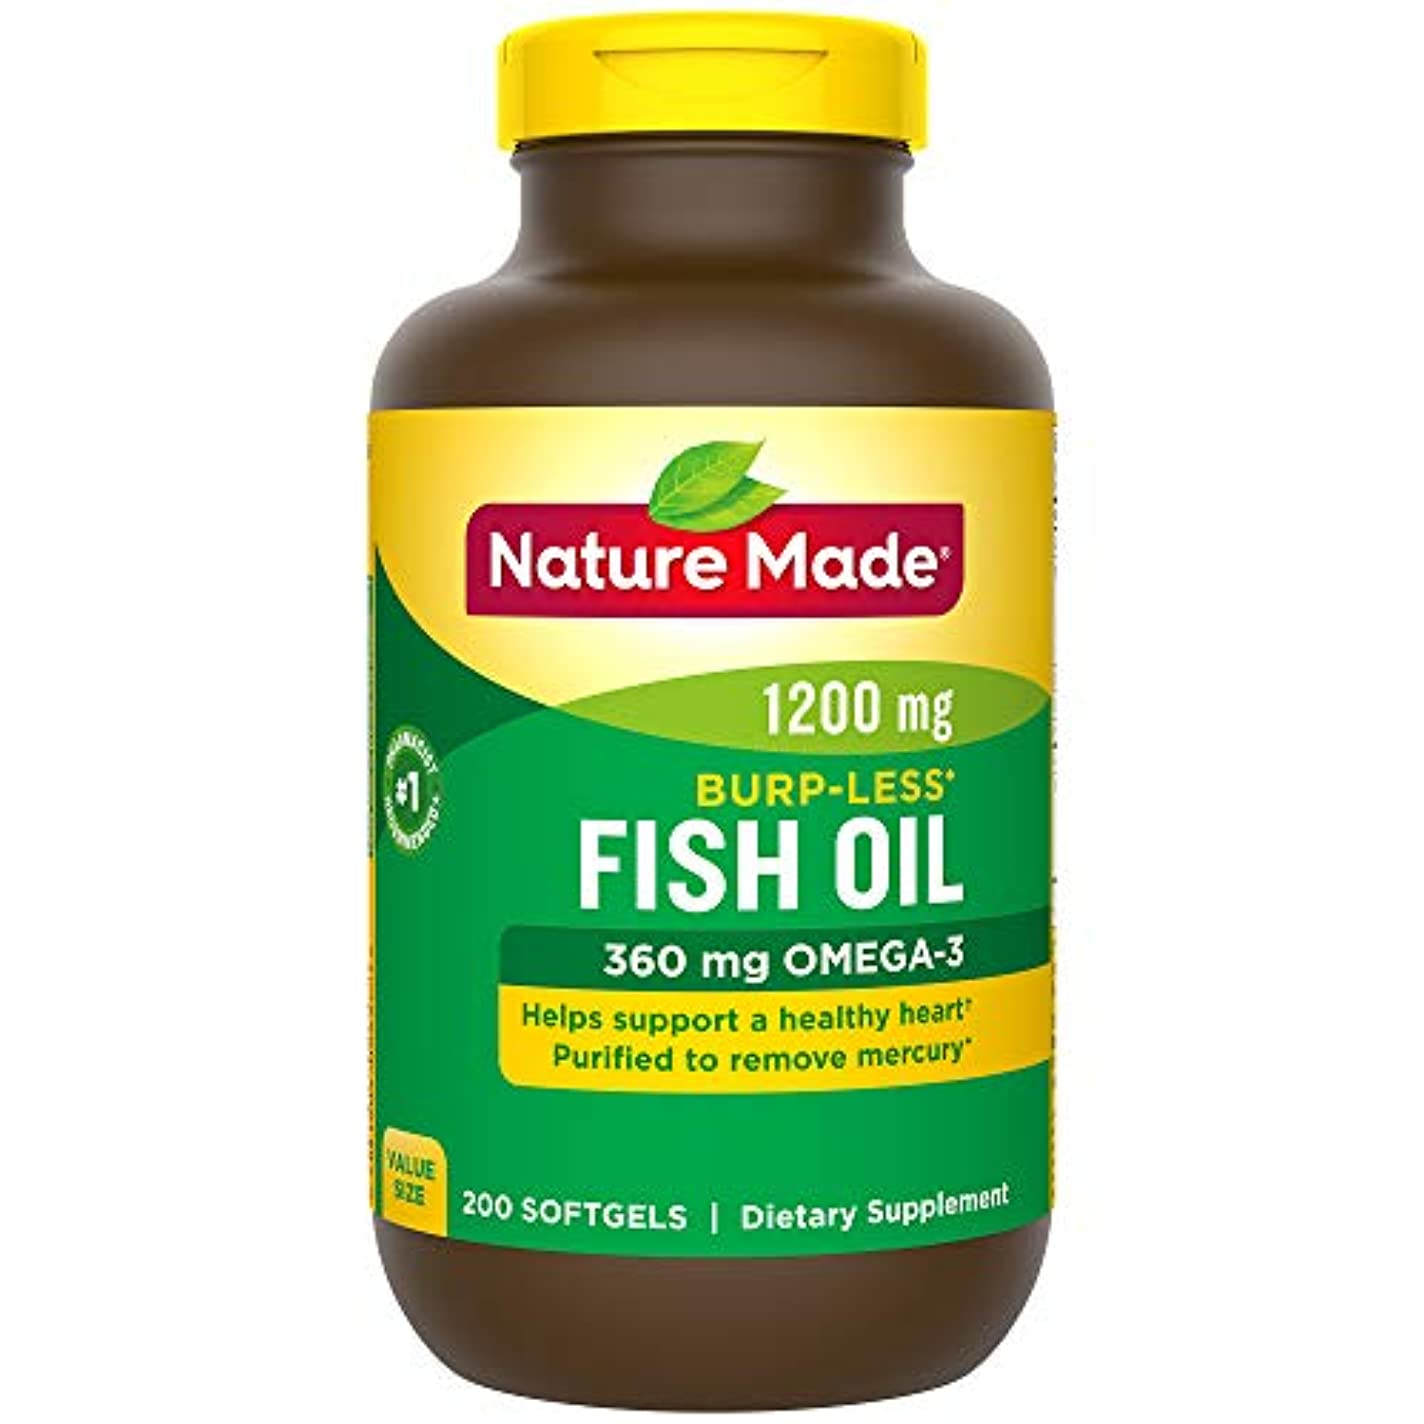 反応する大聖堂考古学Nature Made Fish Oil 1200 Mg Burp-less, Value Size, 200-Count 海外直送品